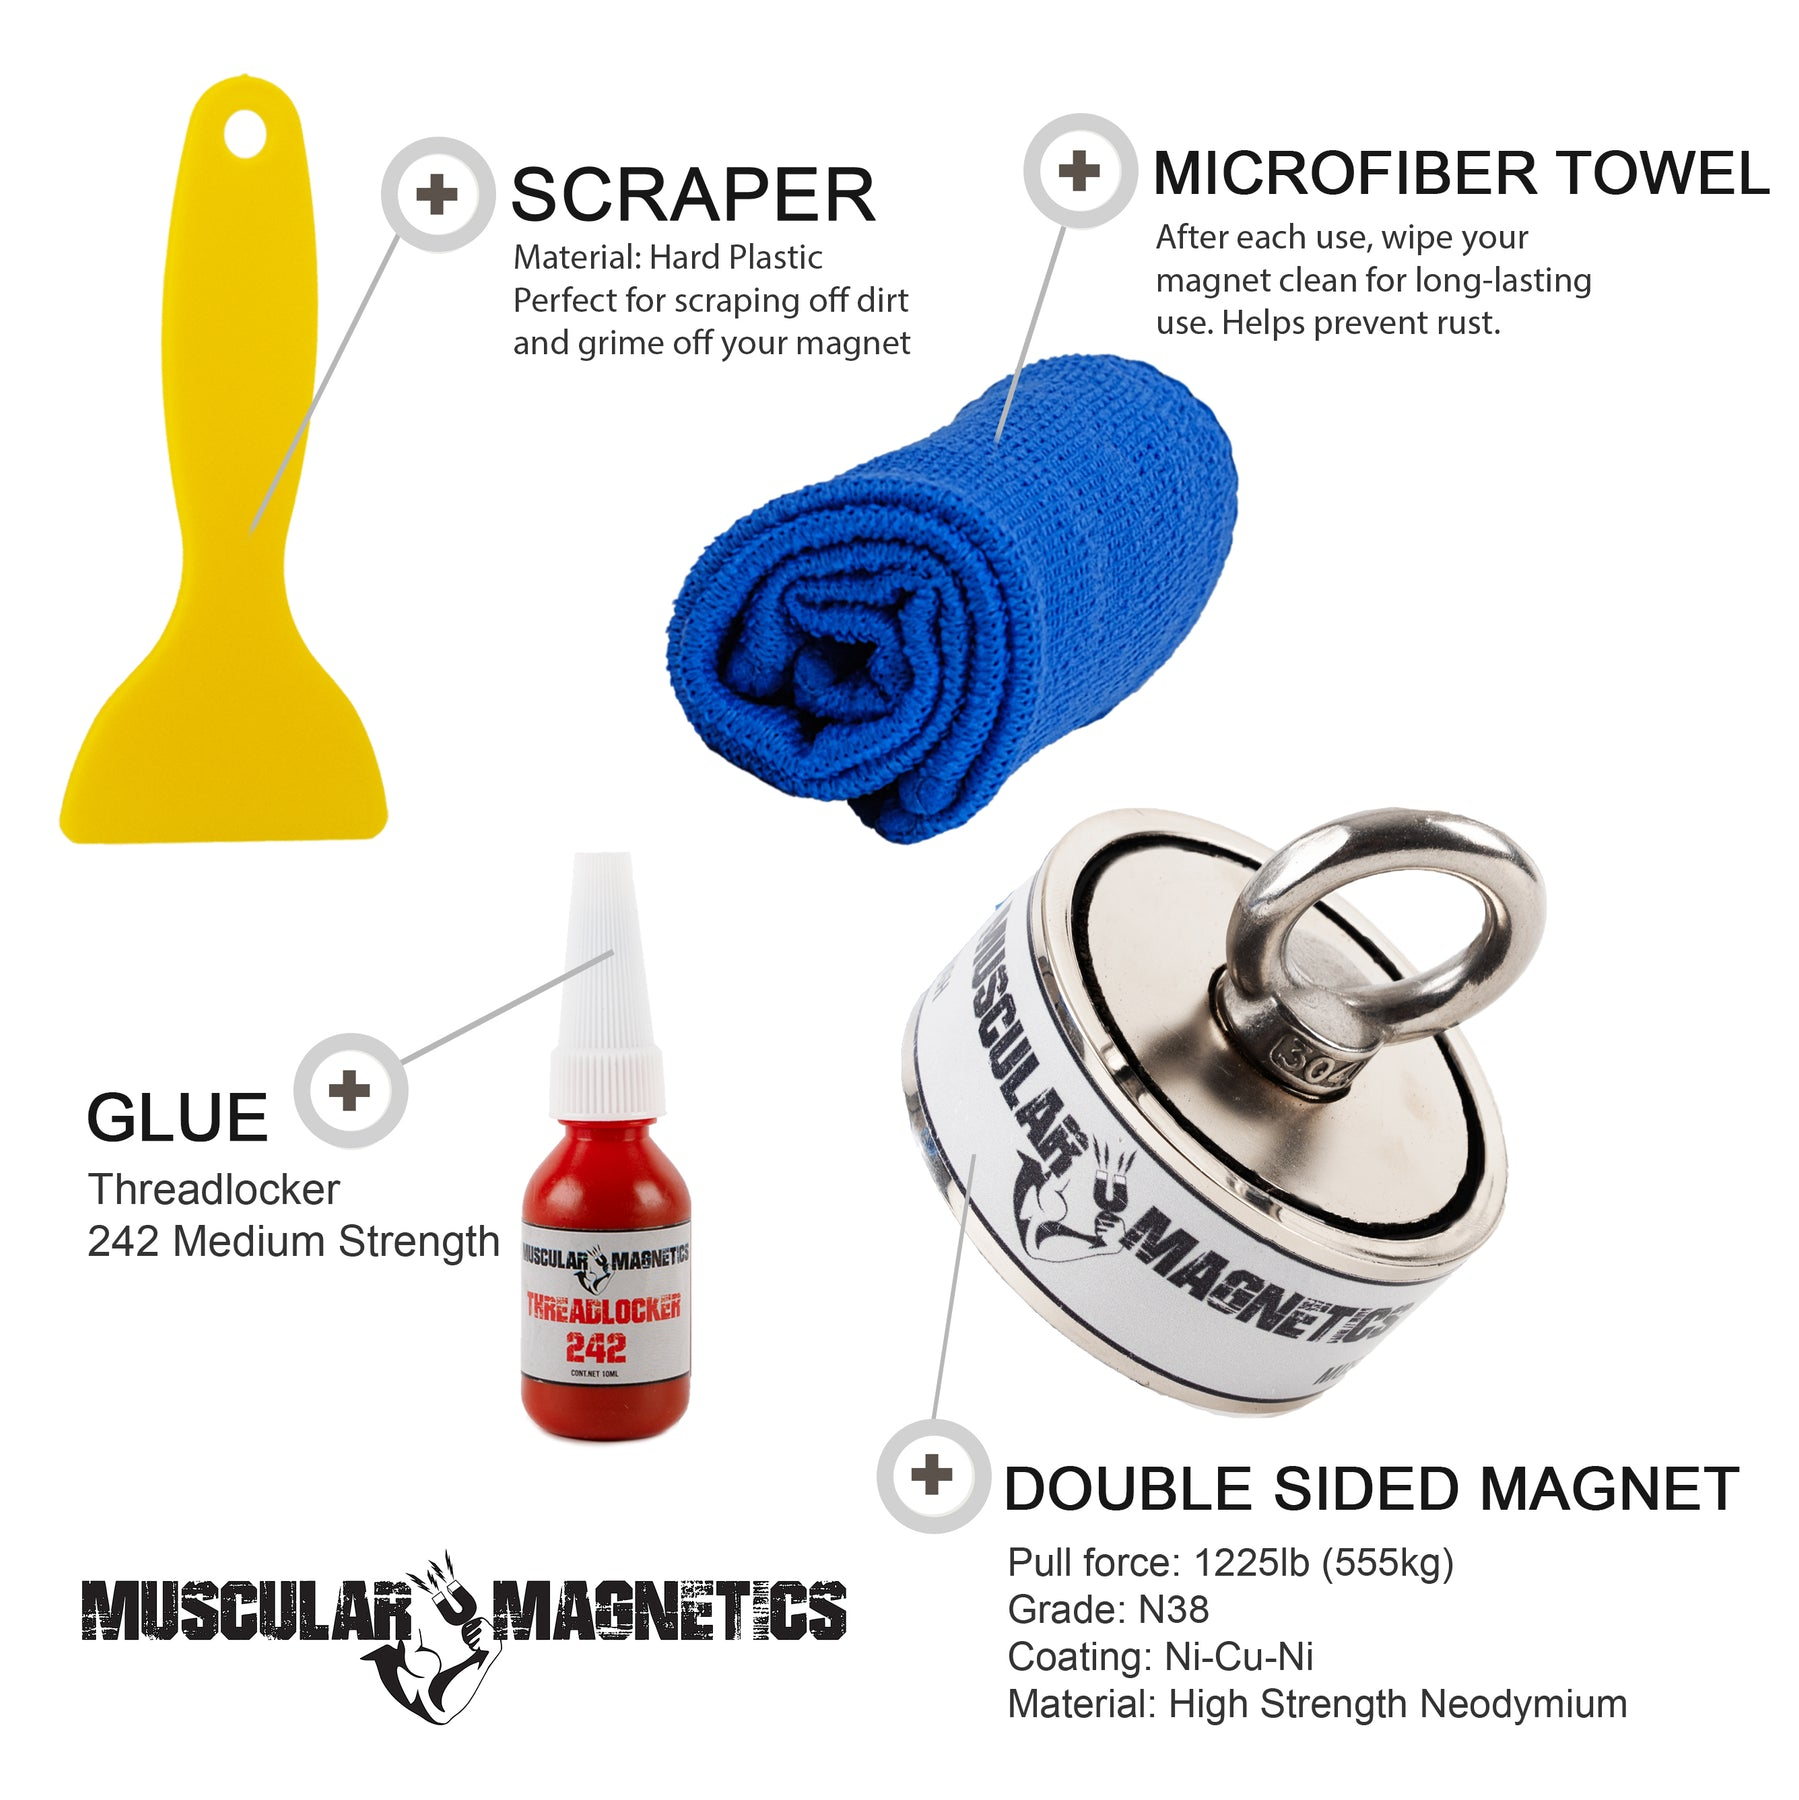 Includes Four Complete Magnet Fishing Kits for Kids to Adults 400lb Single Sided 625lb Single Sided /& 1225lb Double Sided Magnets The Ultimate Magnet Fishing Family Kit 625lb Double Sided